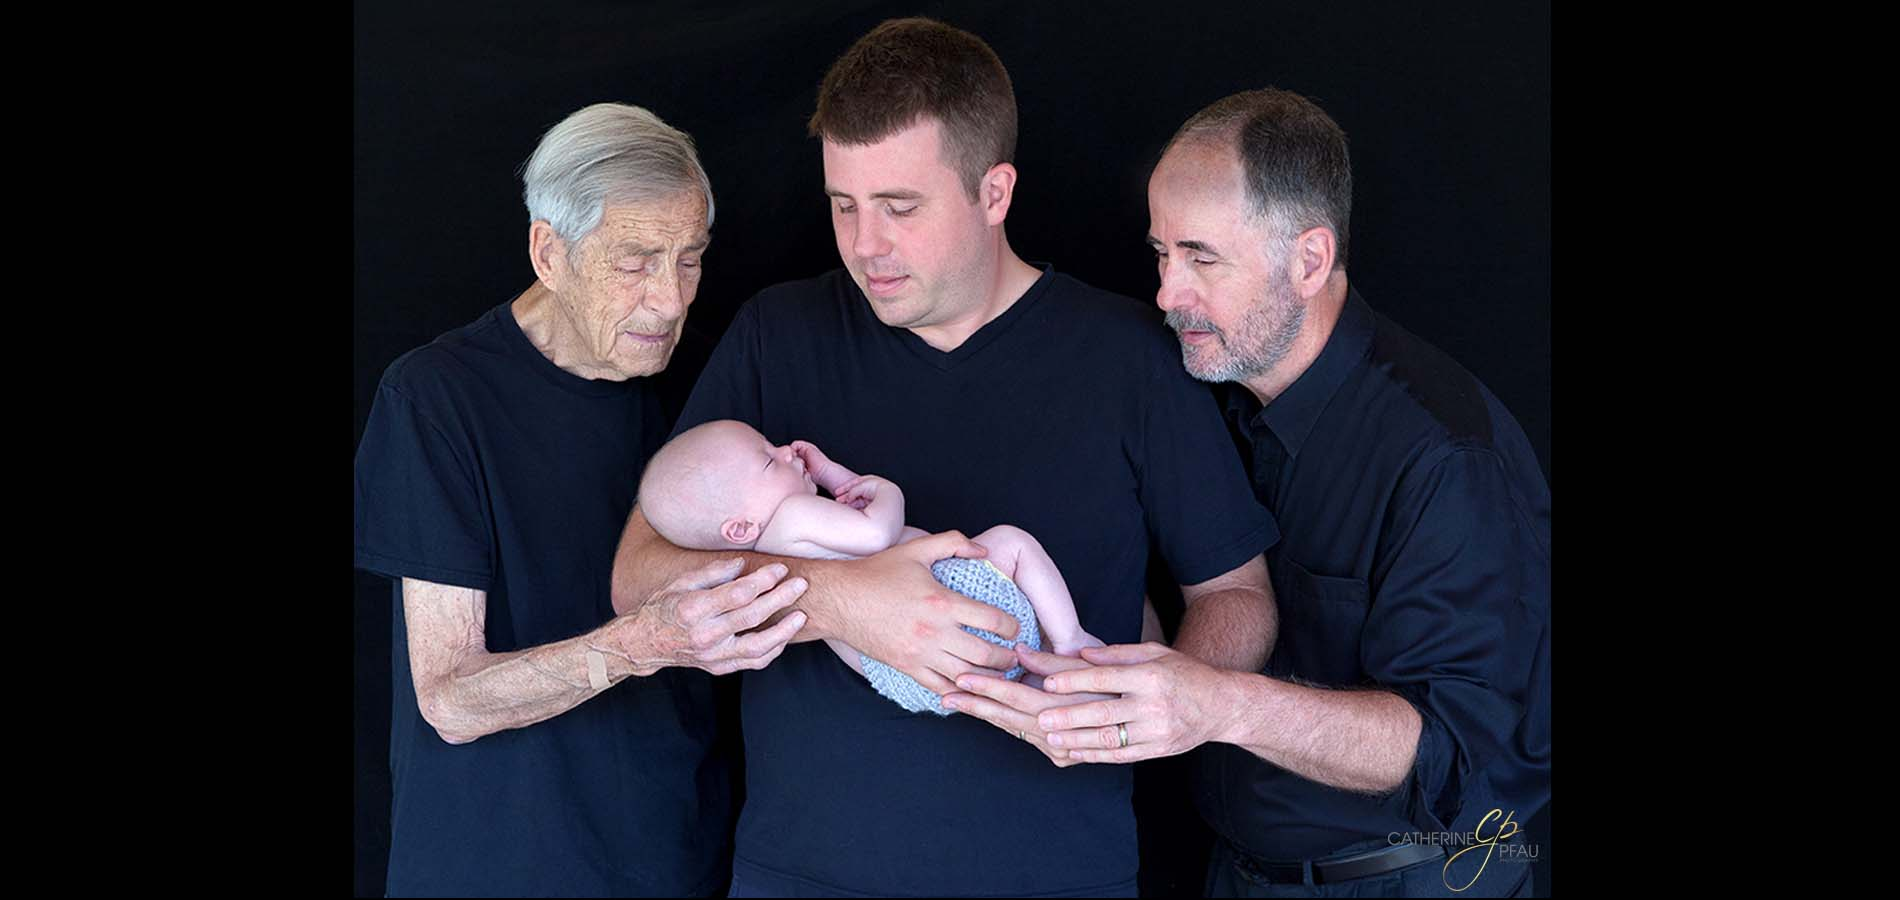 catherinepfauphotography_generations_portrait_men_4.jpg